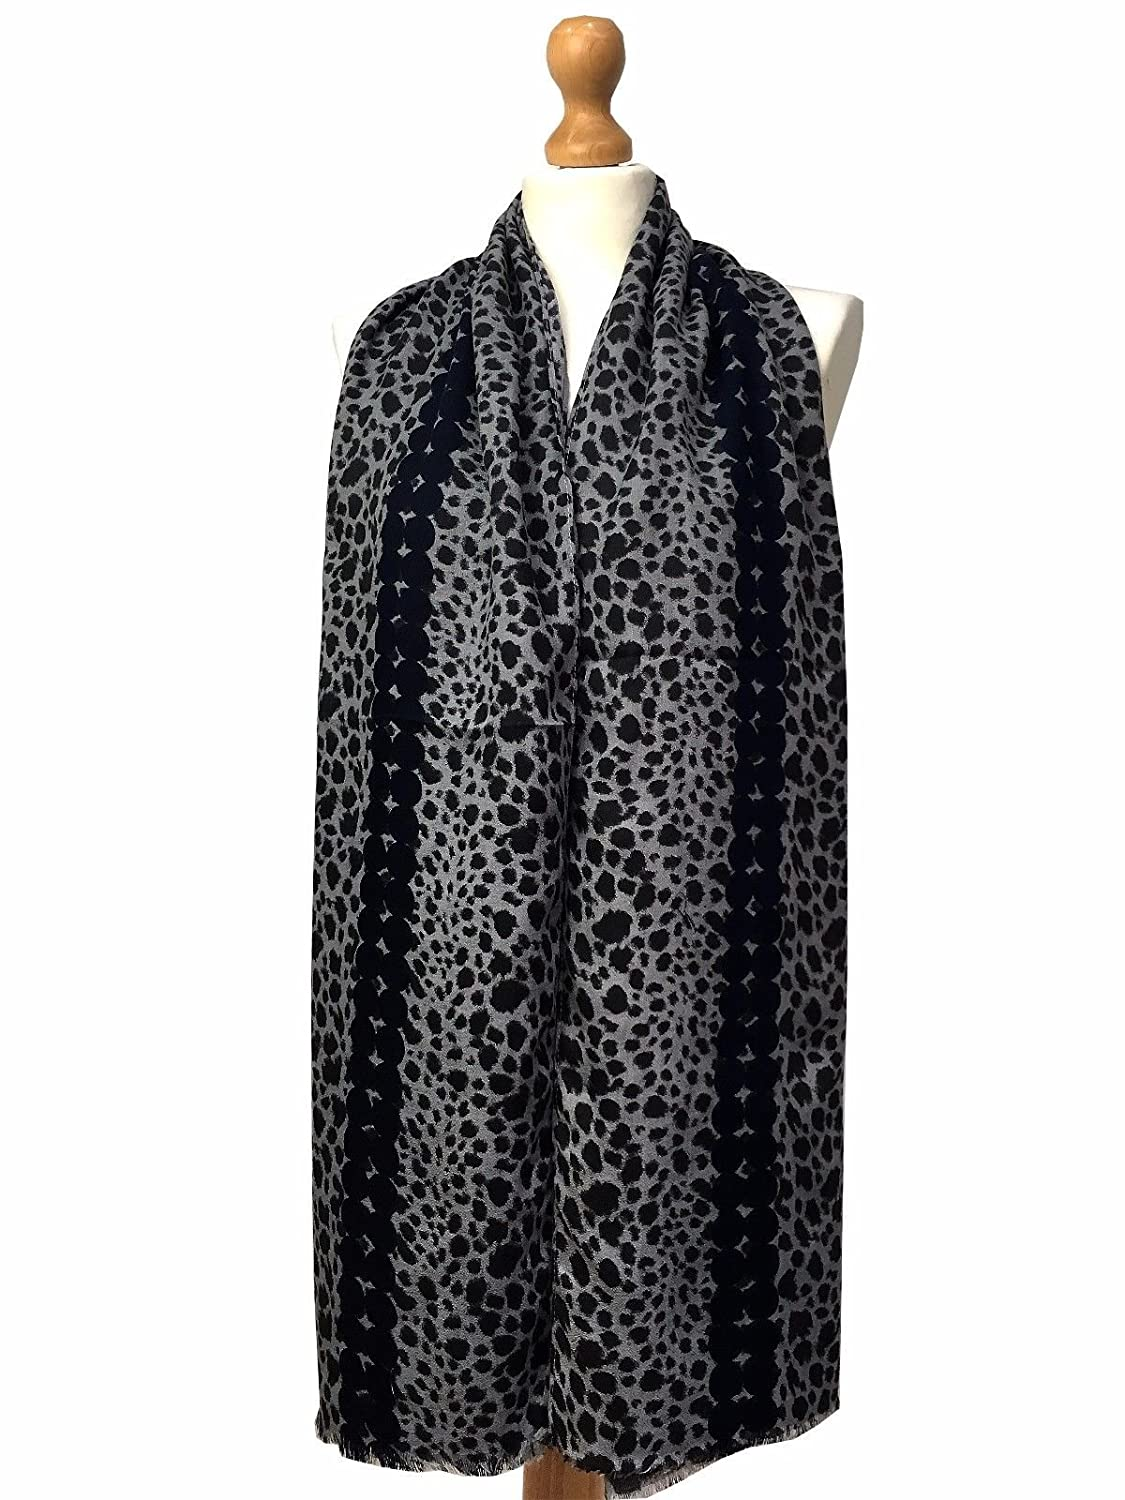 To acquire Leopard grey print scarf photo pictures trends